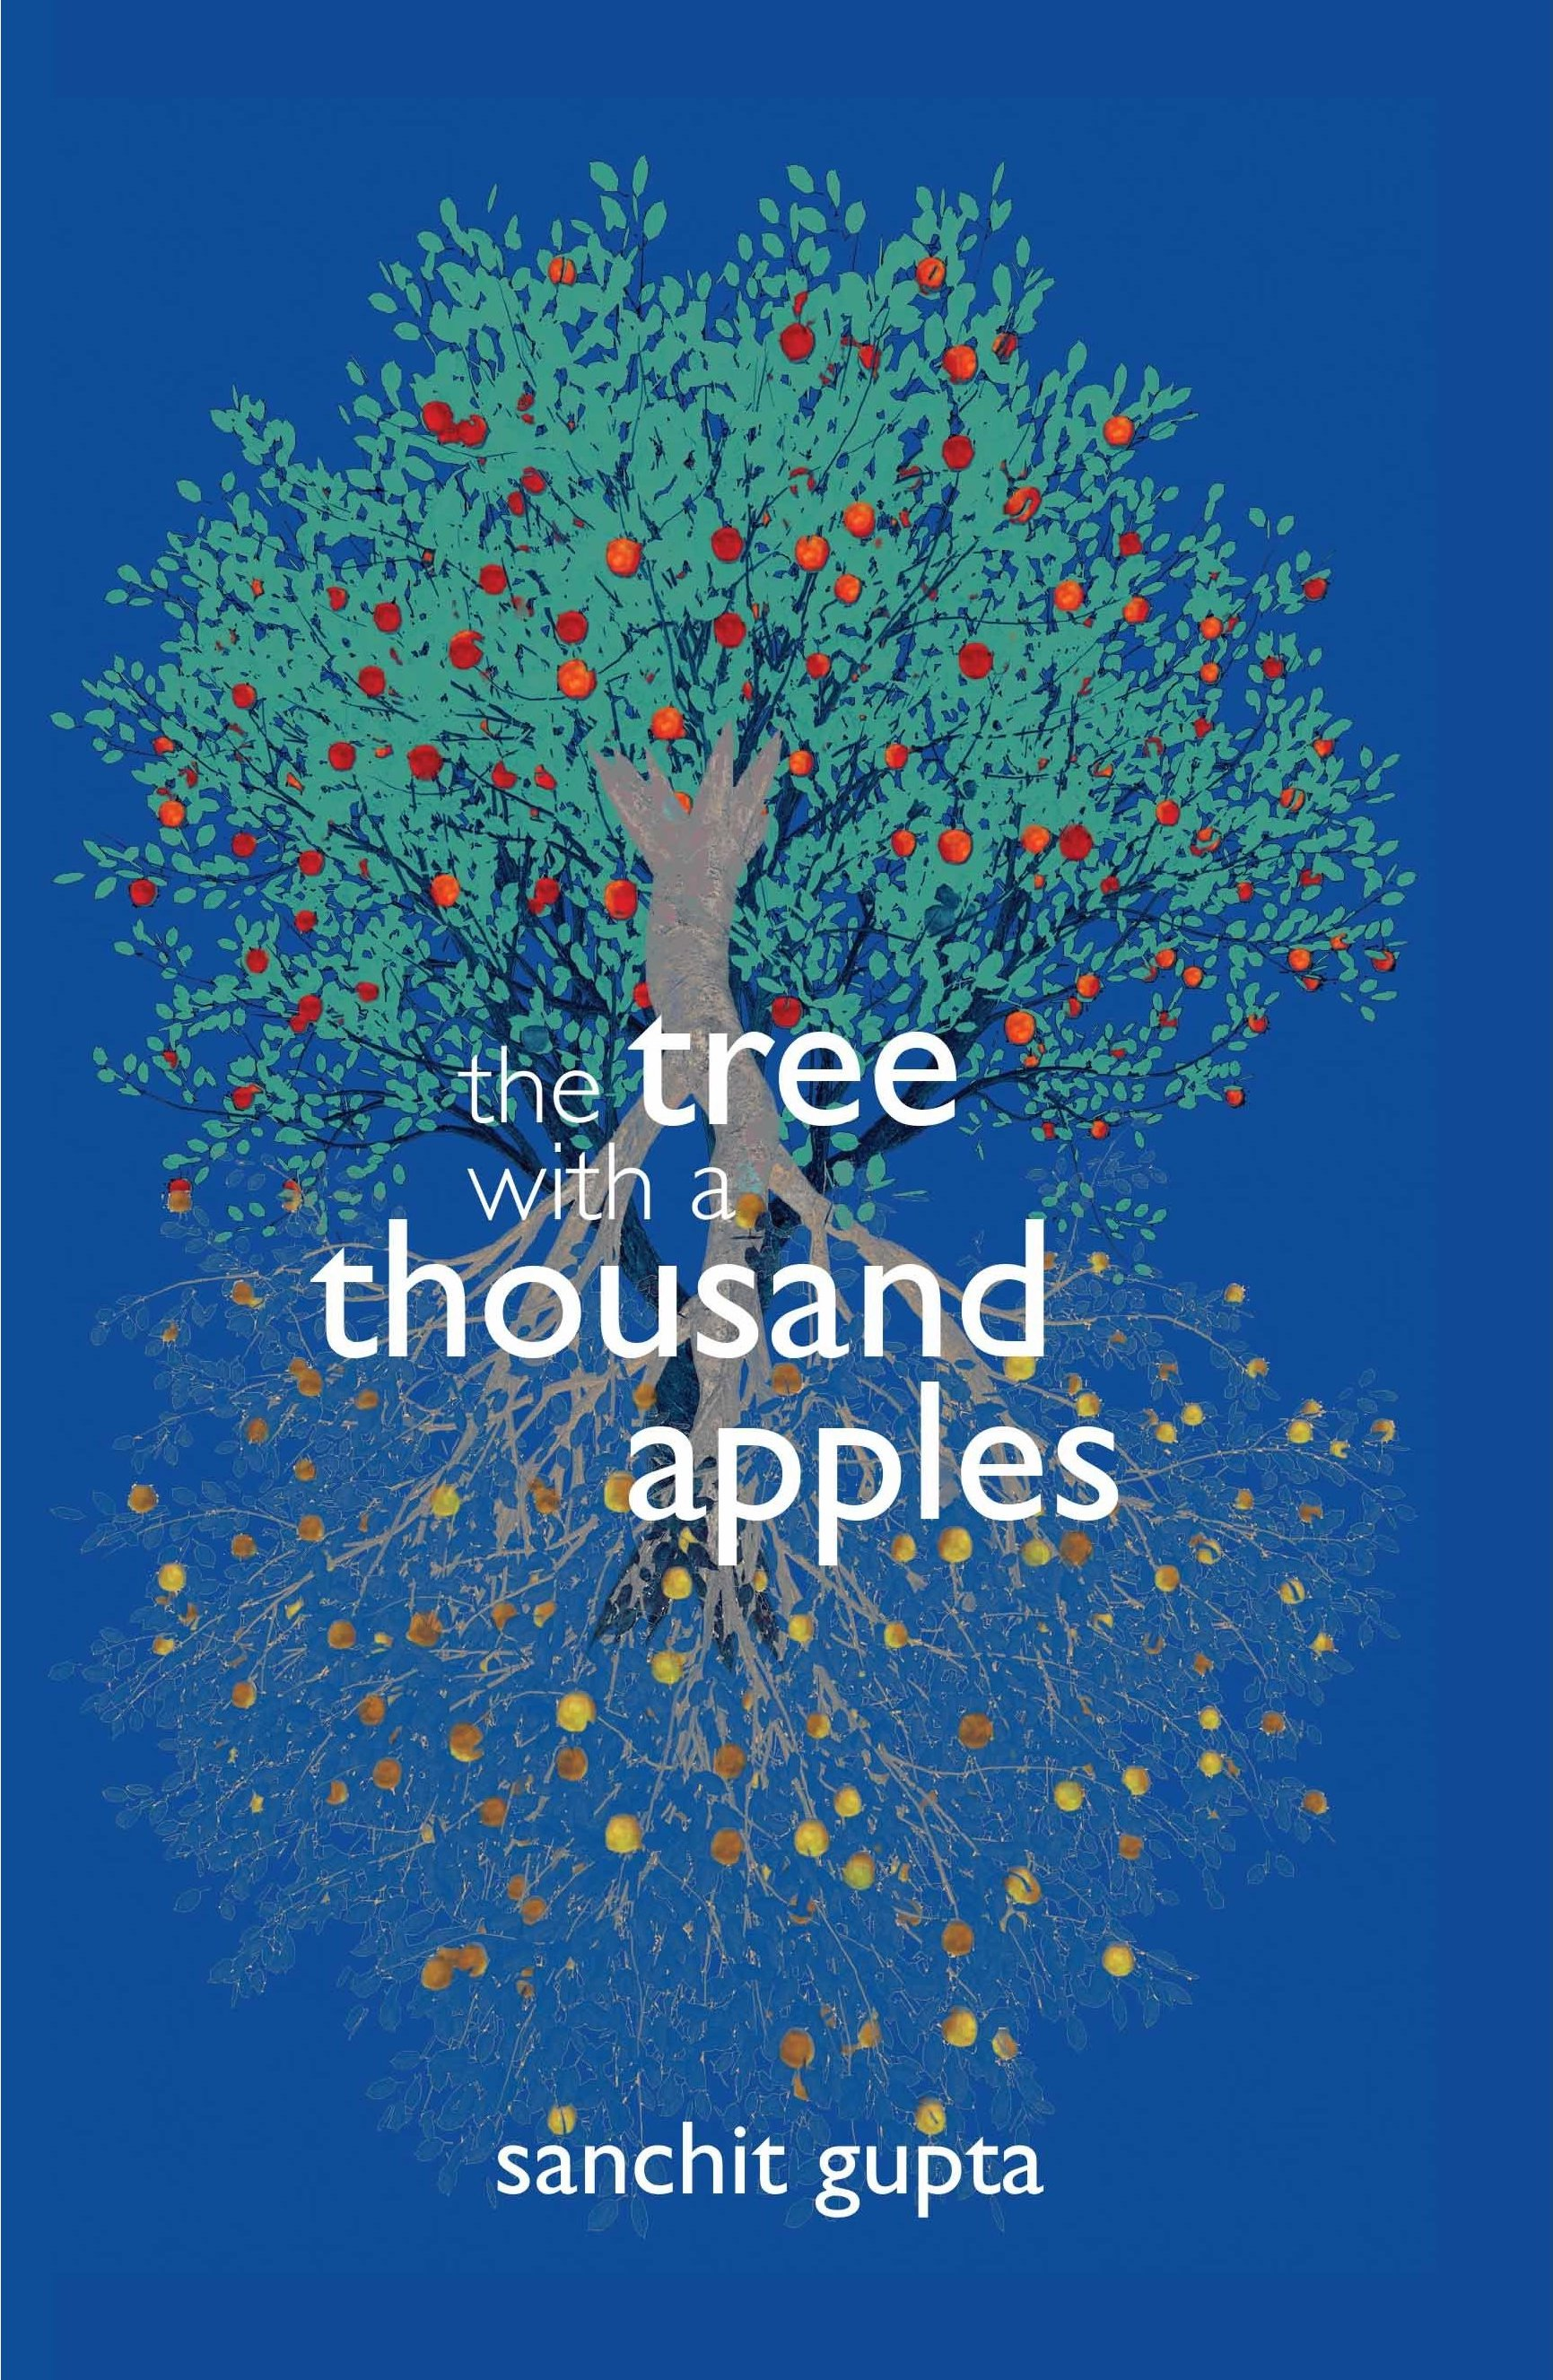 The Tree with a Thousand Apples- Book Review